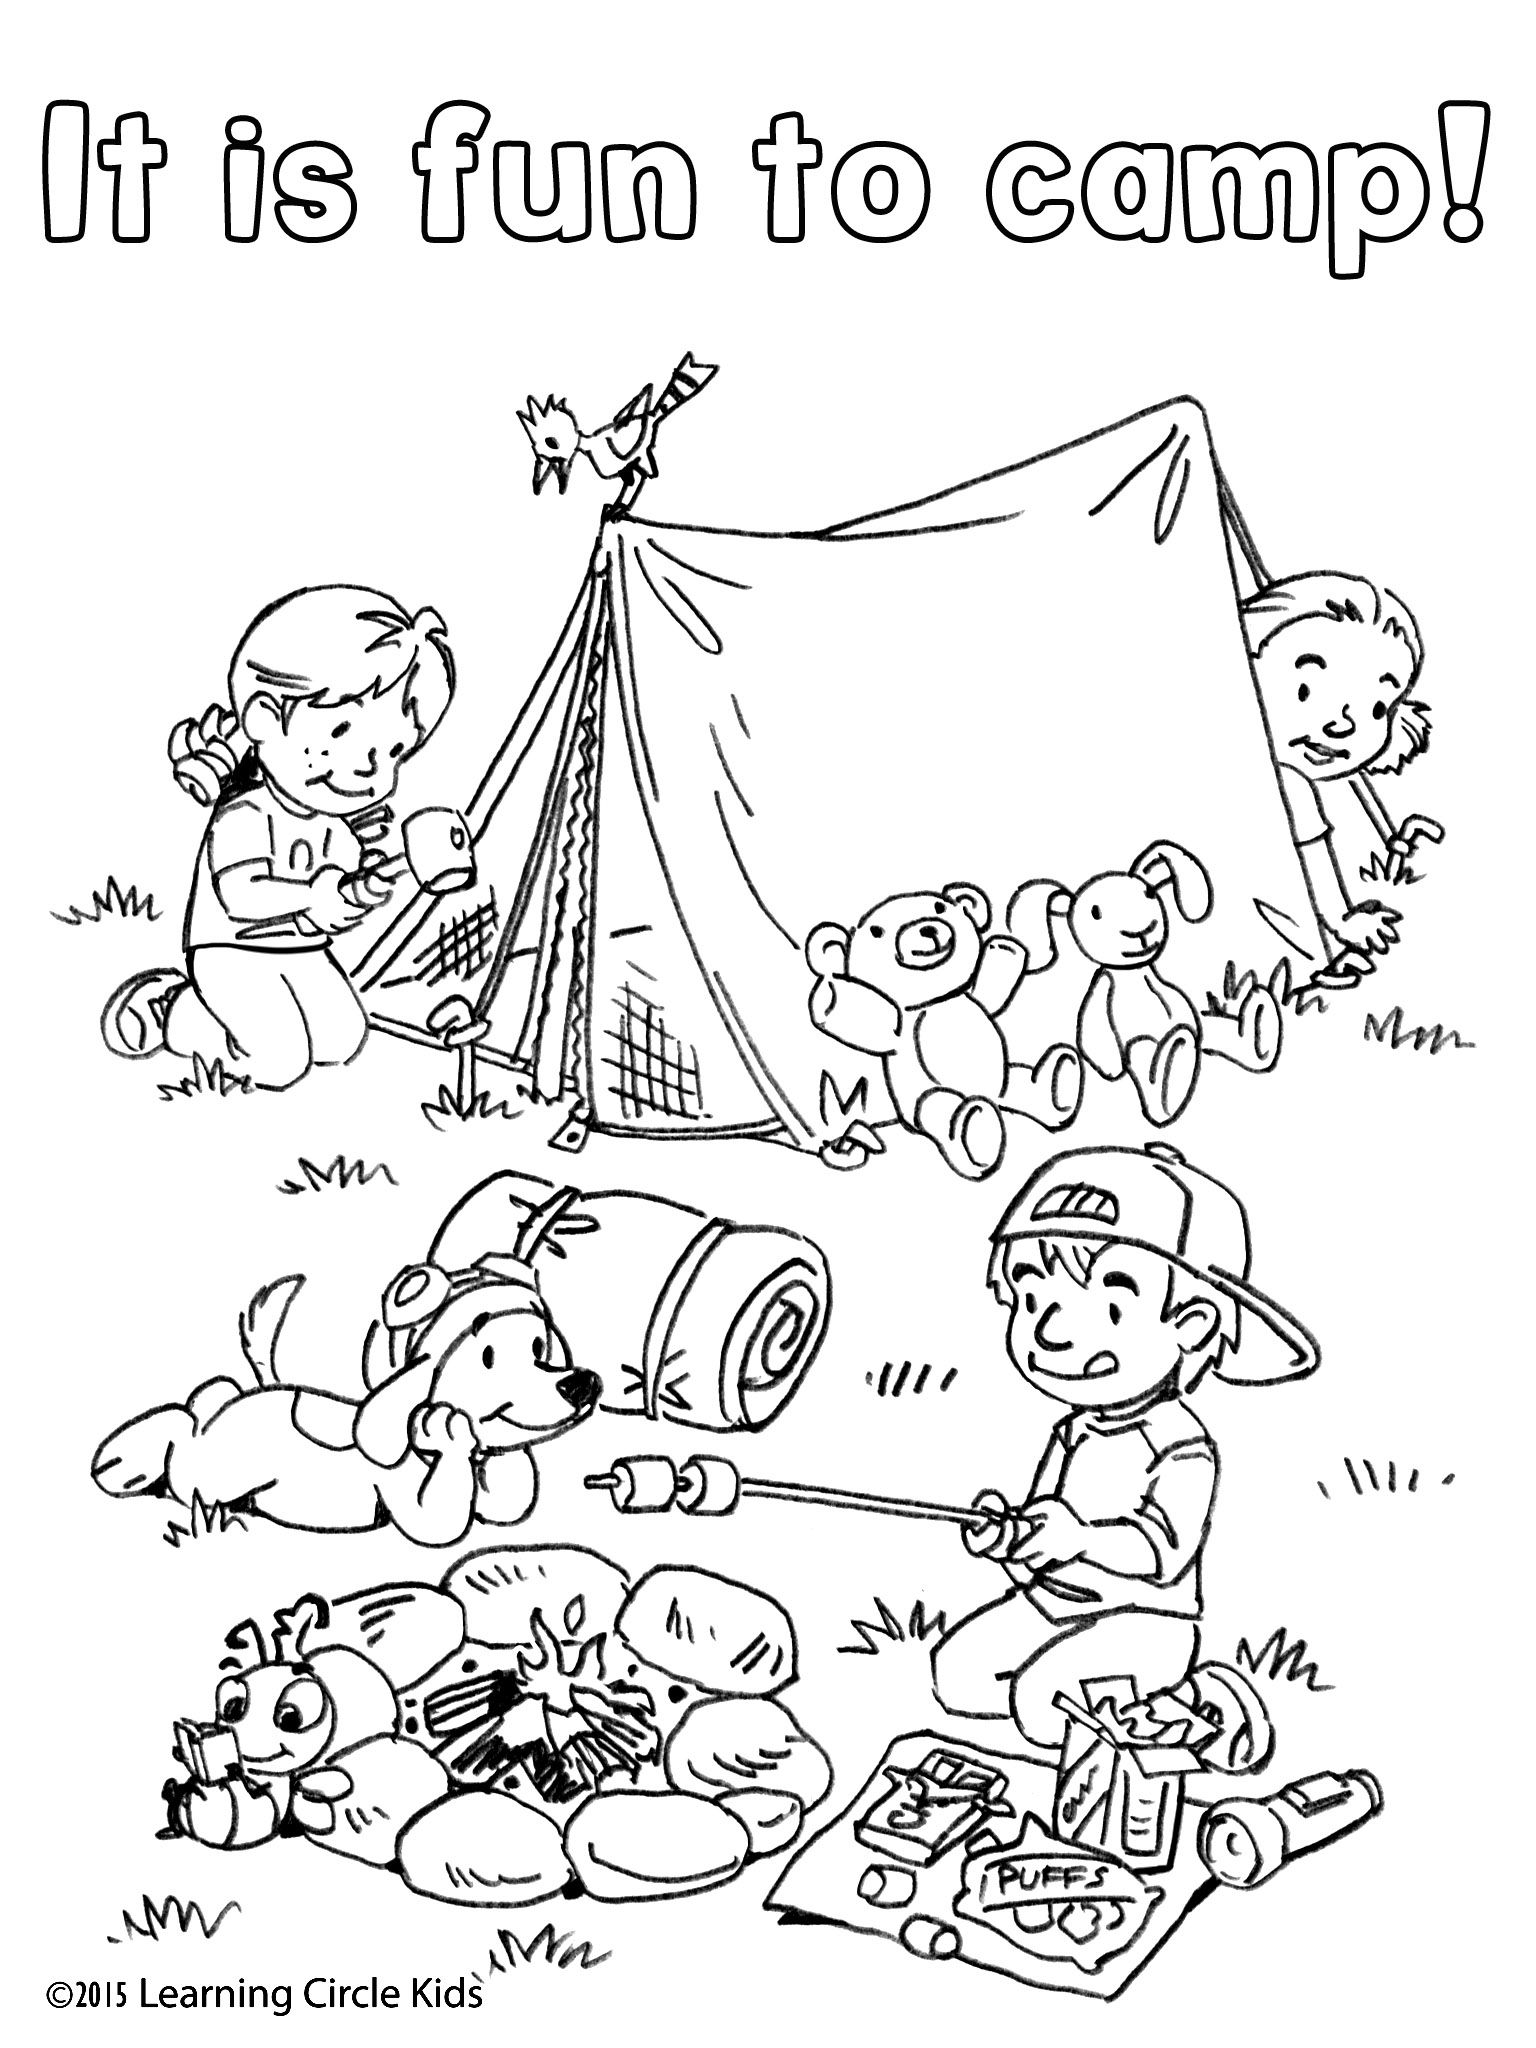 Free coloring pages for reading - Free Coloring And Reading Page Summer Fun Camping With Reader Bee And Friends